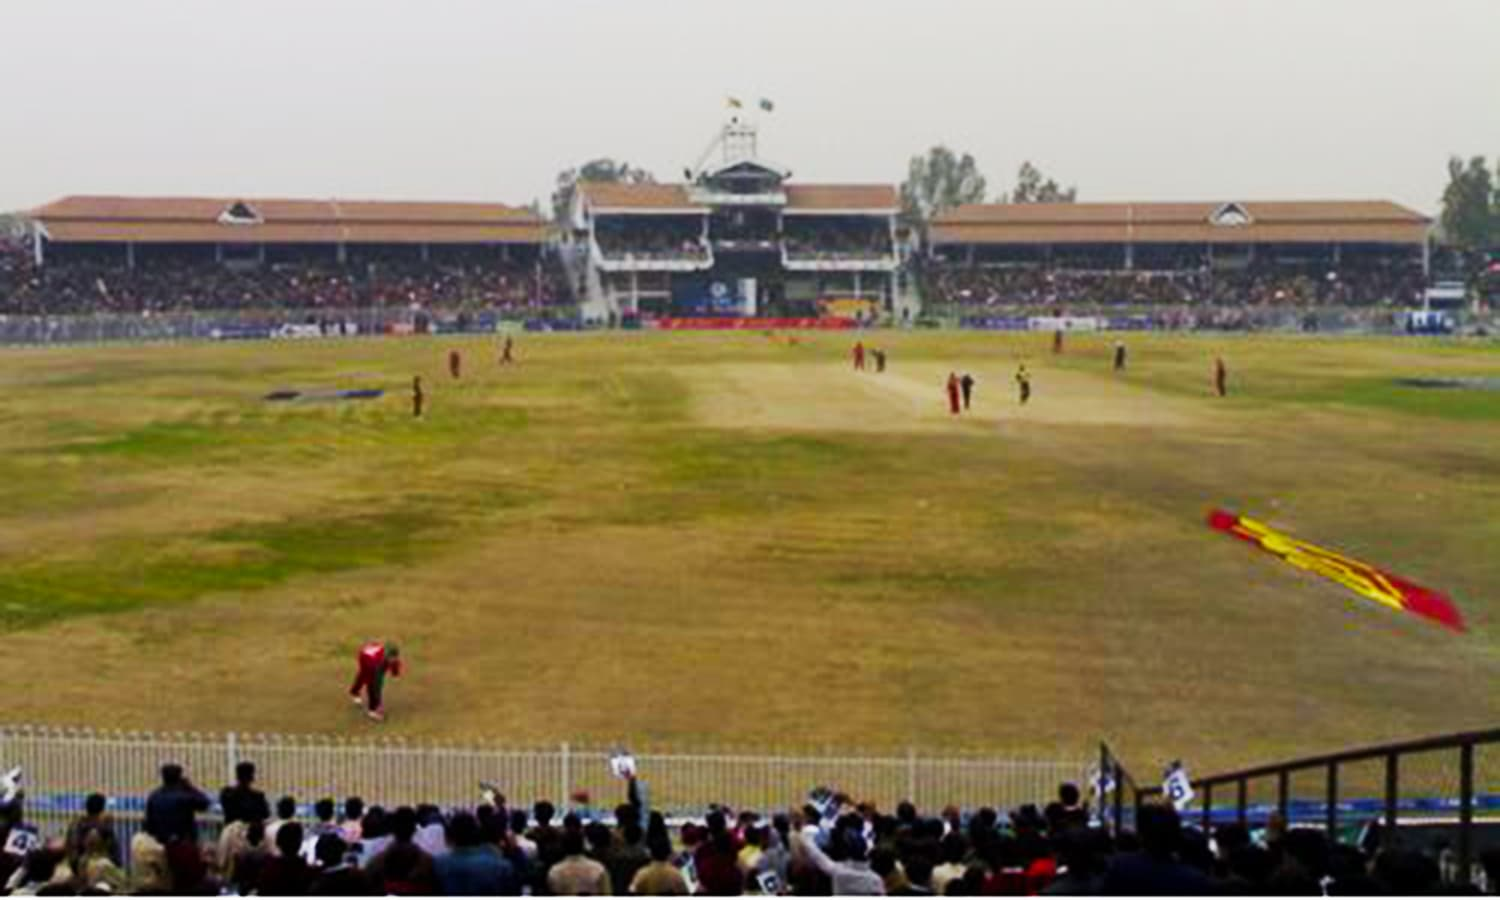 1998: A Pakistan-Zimbabwe ODI at Sheikhupura Stadium. (Pic: GeoViews)